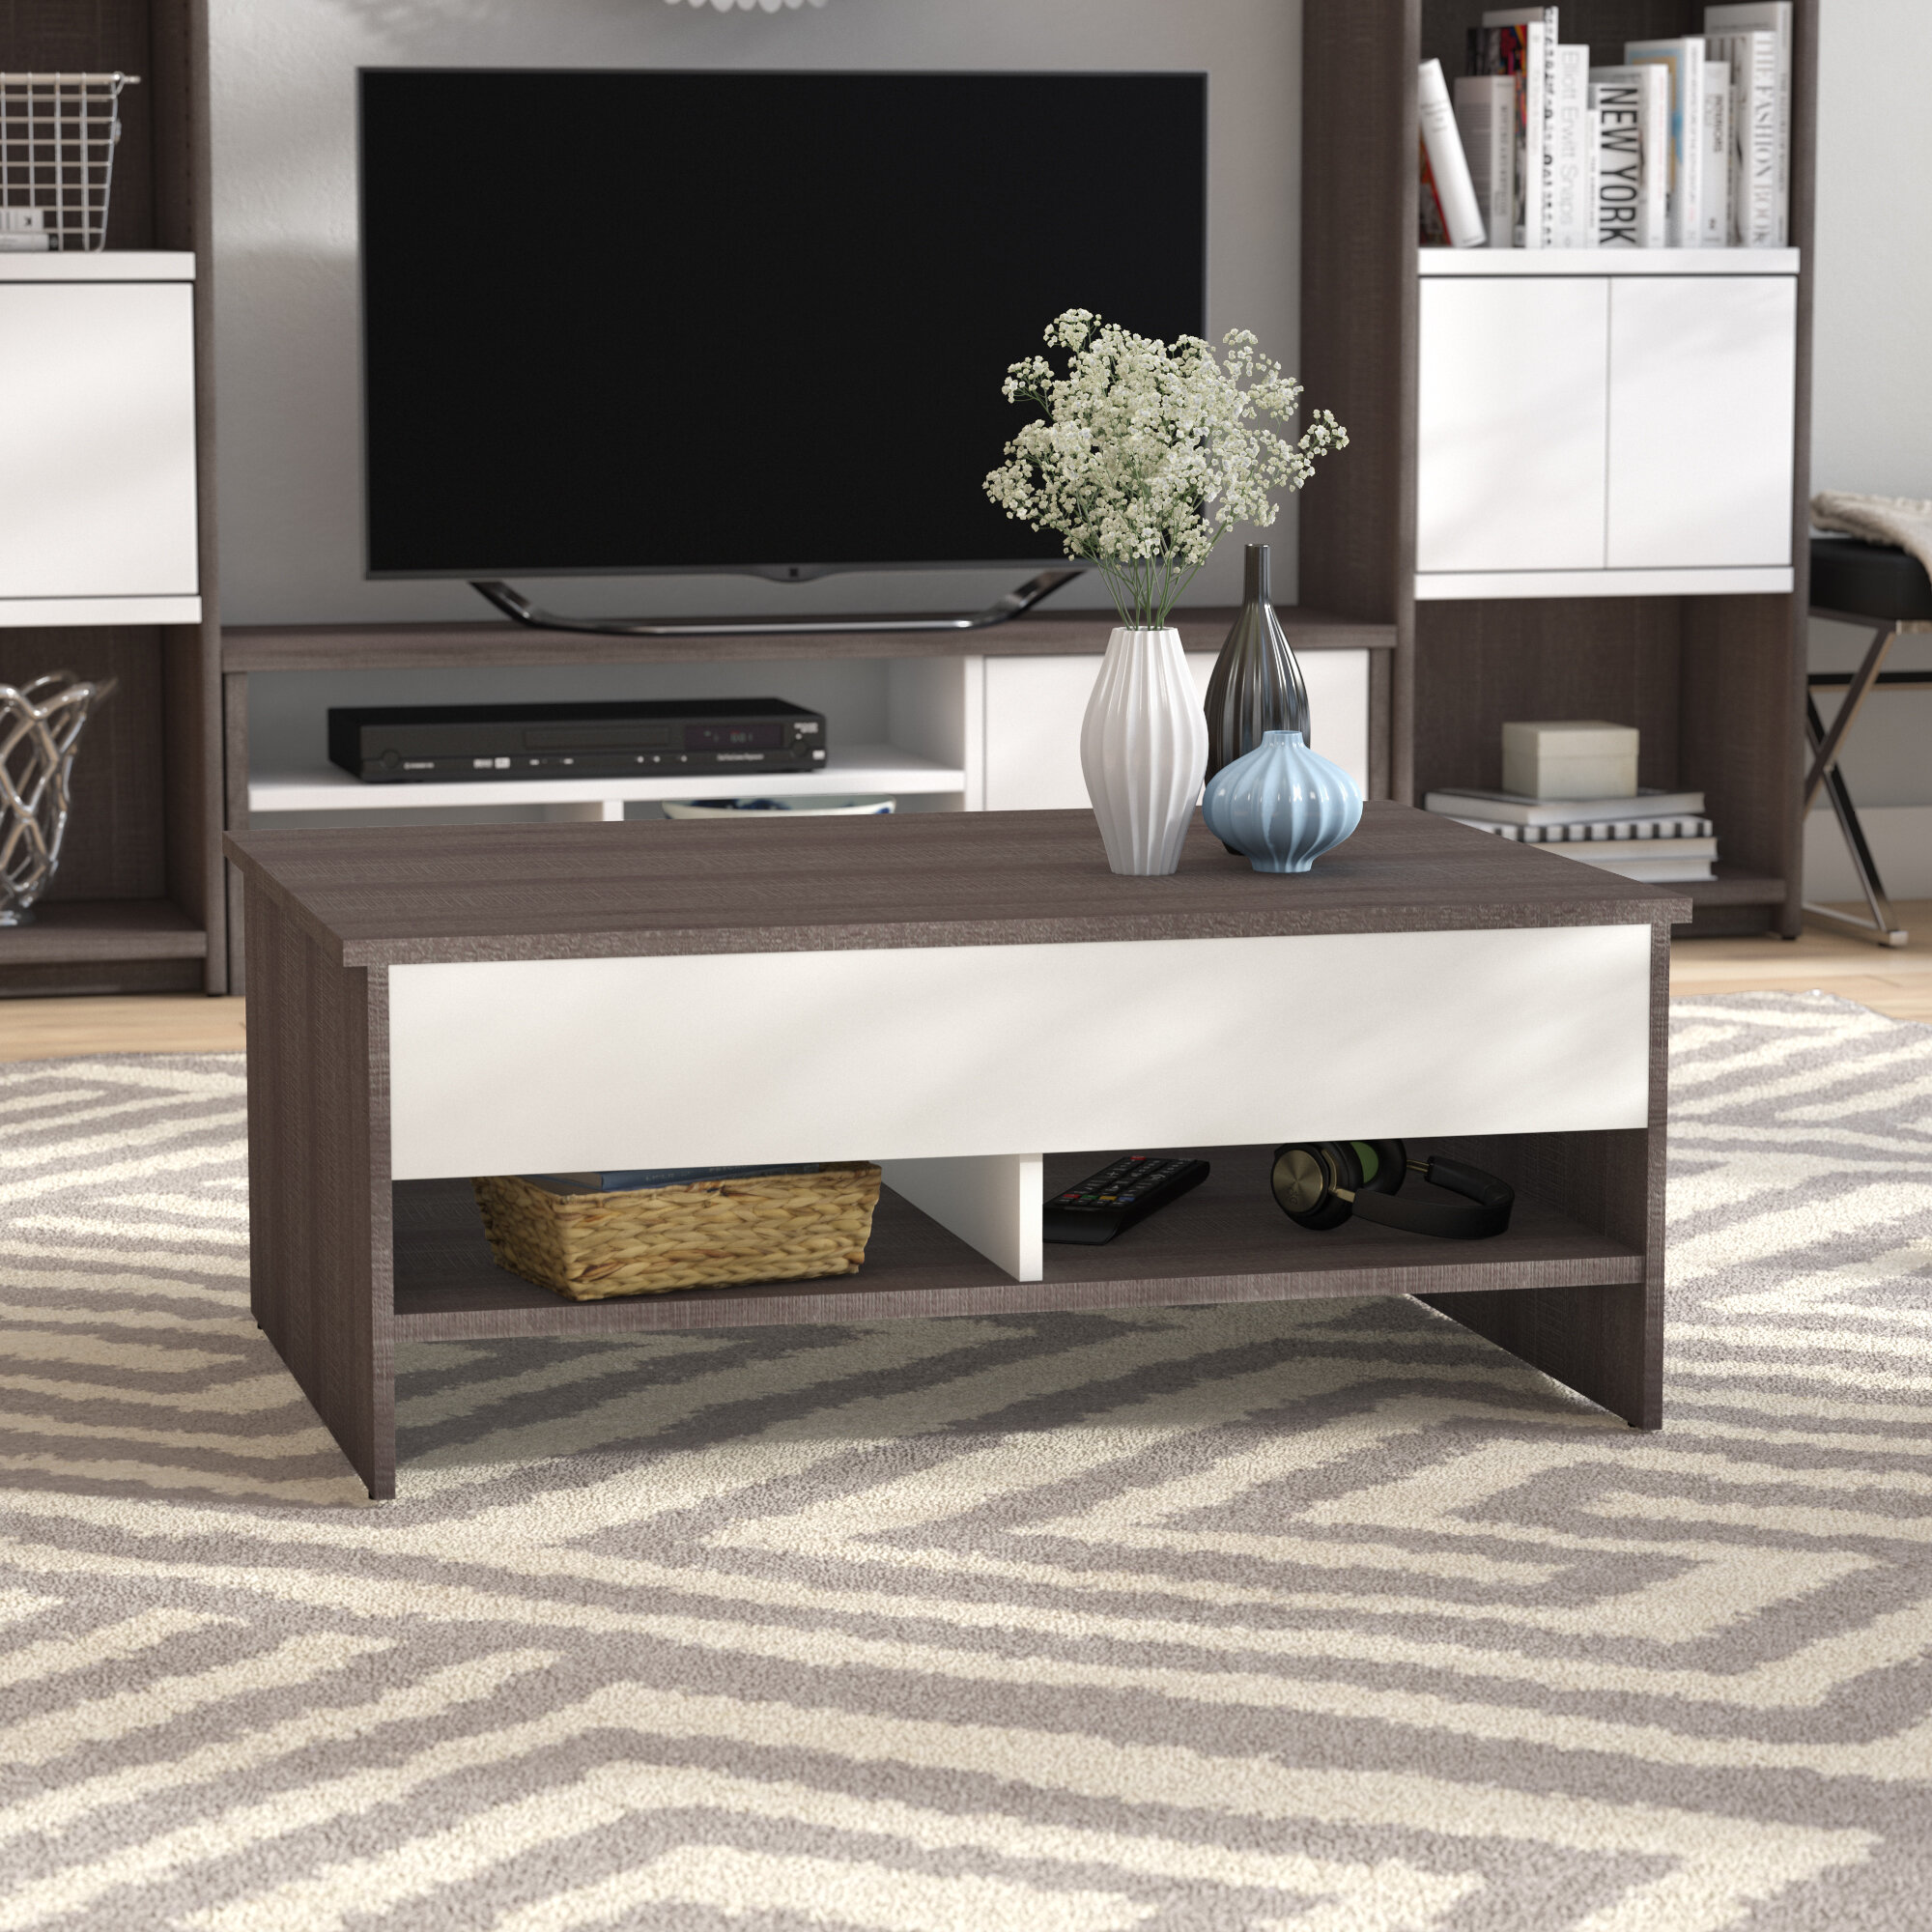 Latitude Run Frederick Lift Top Sled Coffee Table With Storage Reviews Wayfair